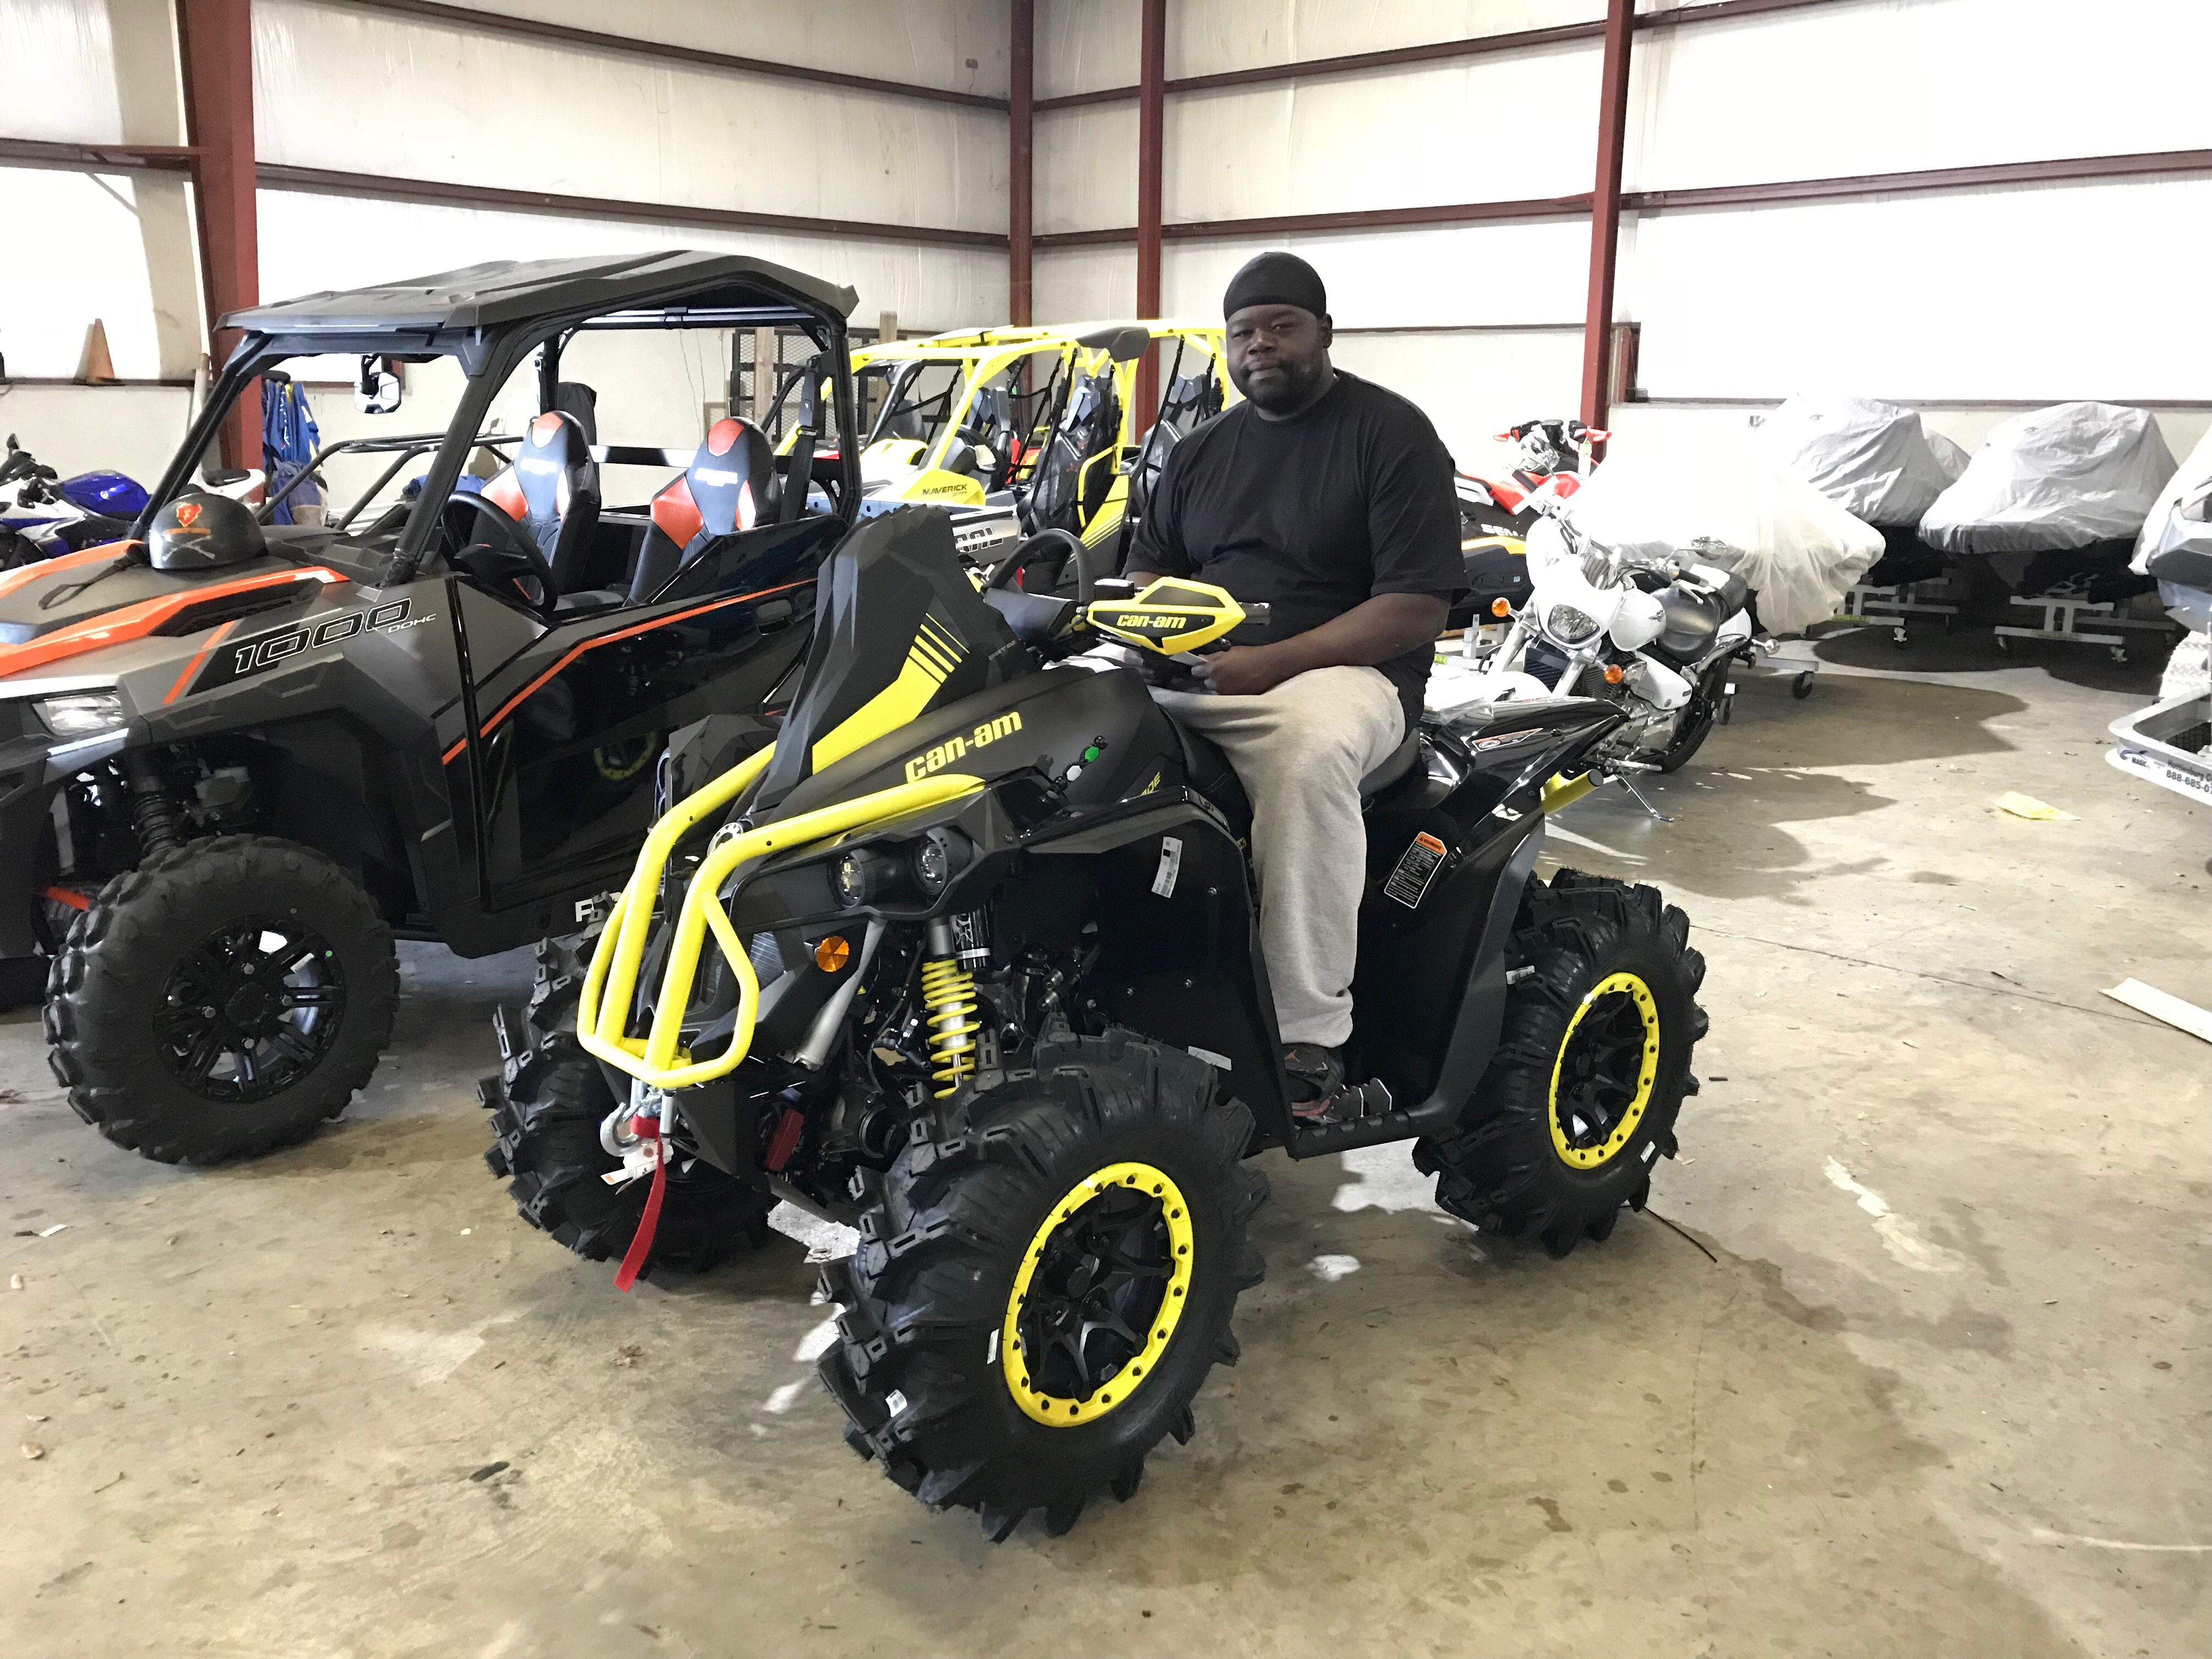 Congratulations To Alan Lang From Wagarville Al For Purchasing A 2018 Can Am Renegade Xmr 1000r At Hattiesburg Cycl Hattiesburg Monster Trucks Happy Customers